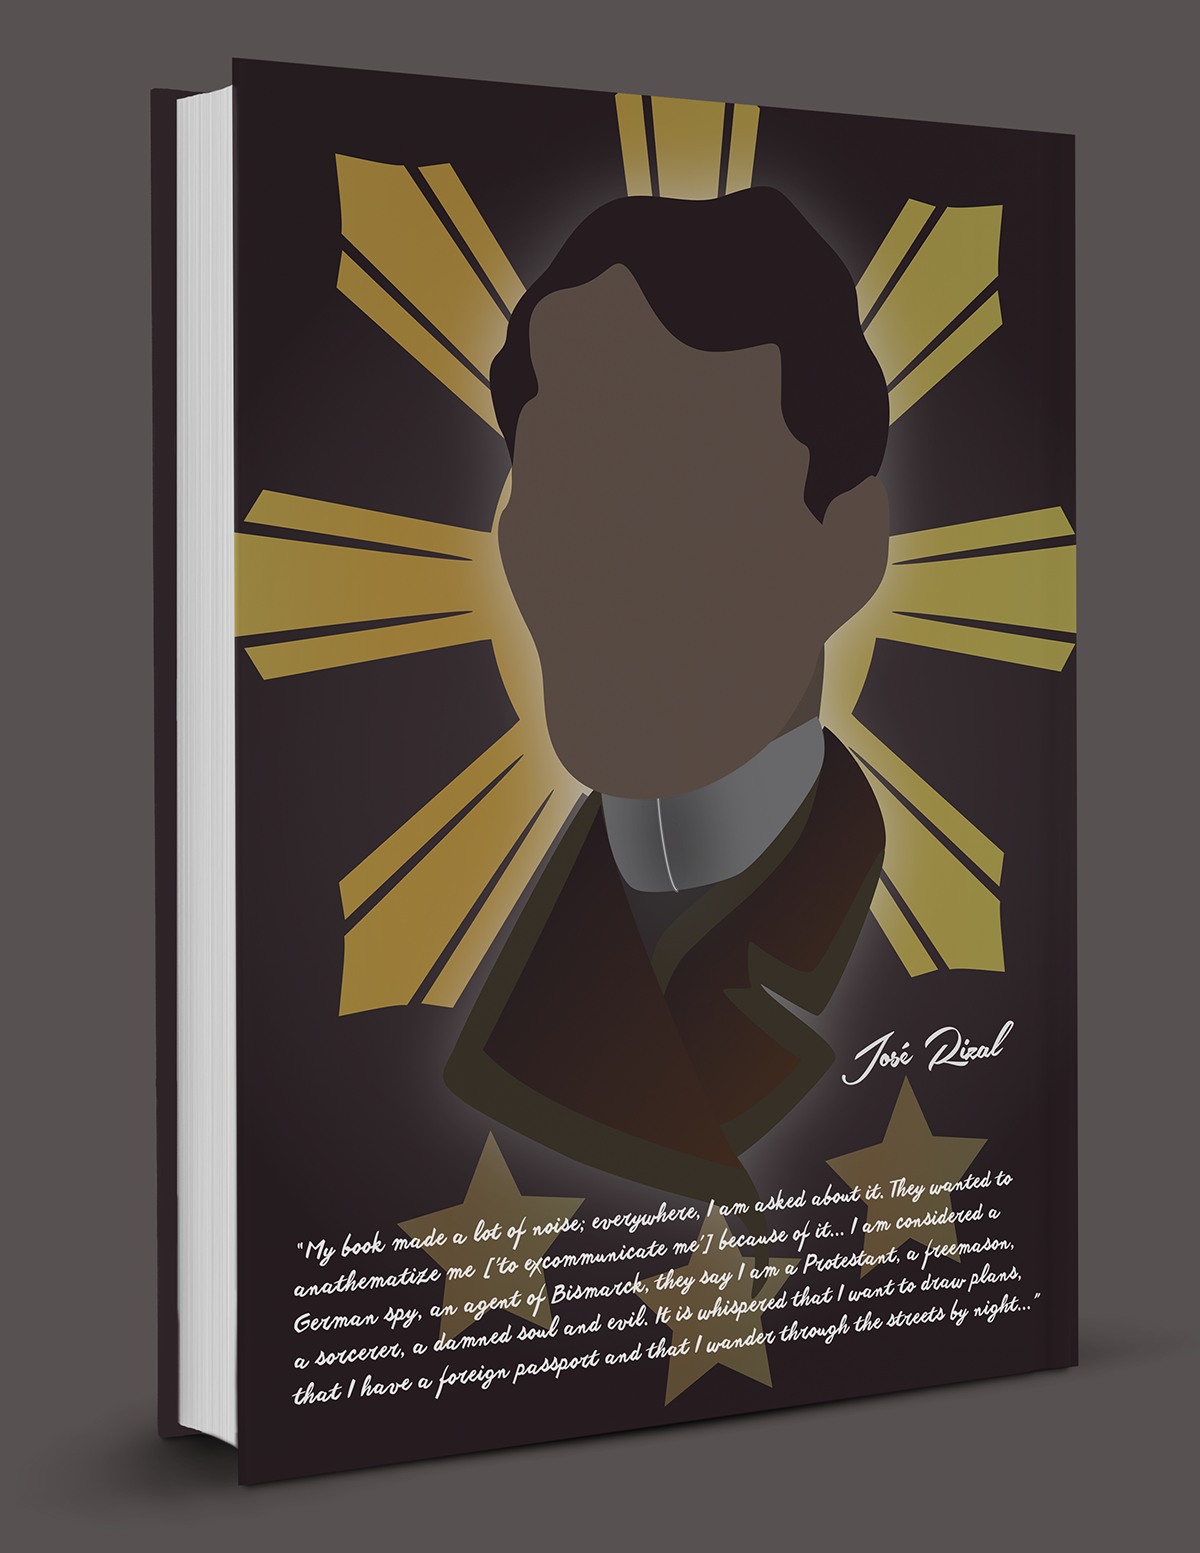 Noli me tngere jos rizal book cover on behance front cover to those who are not familiar with this book nor the historical importance of the author to the philippines you might be asking yourself solutioingenieria Gallery